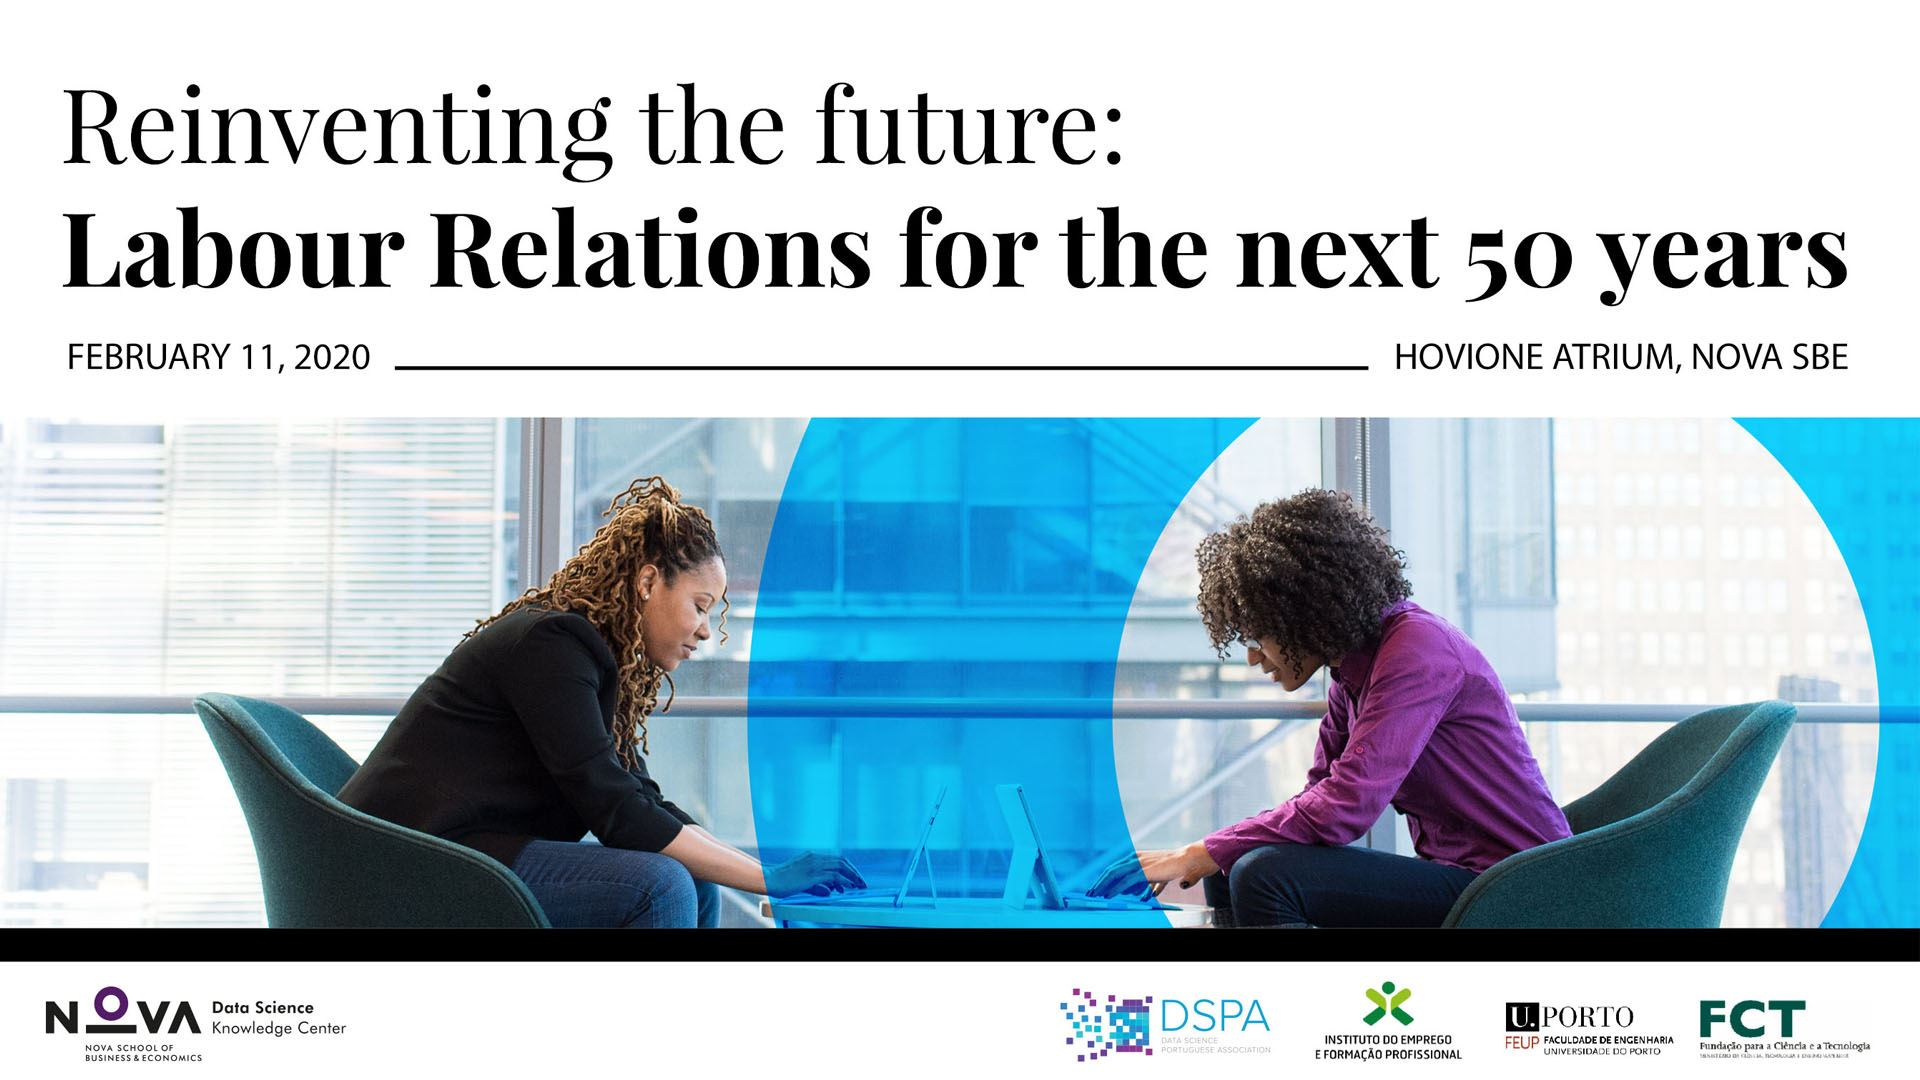 Reinventing the future: Labour Relations for the next 50 years